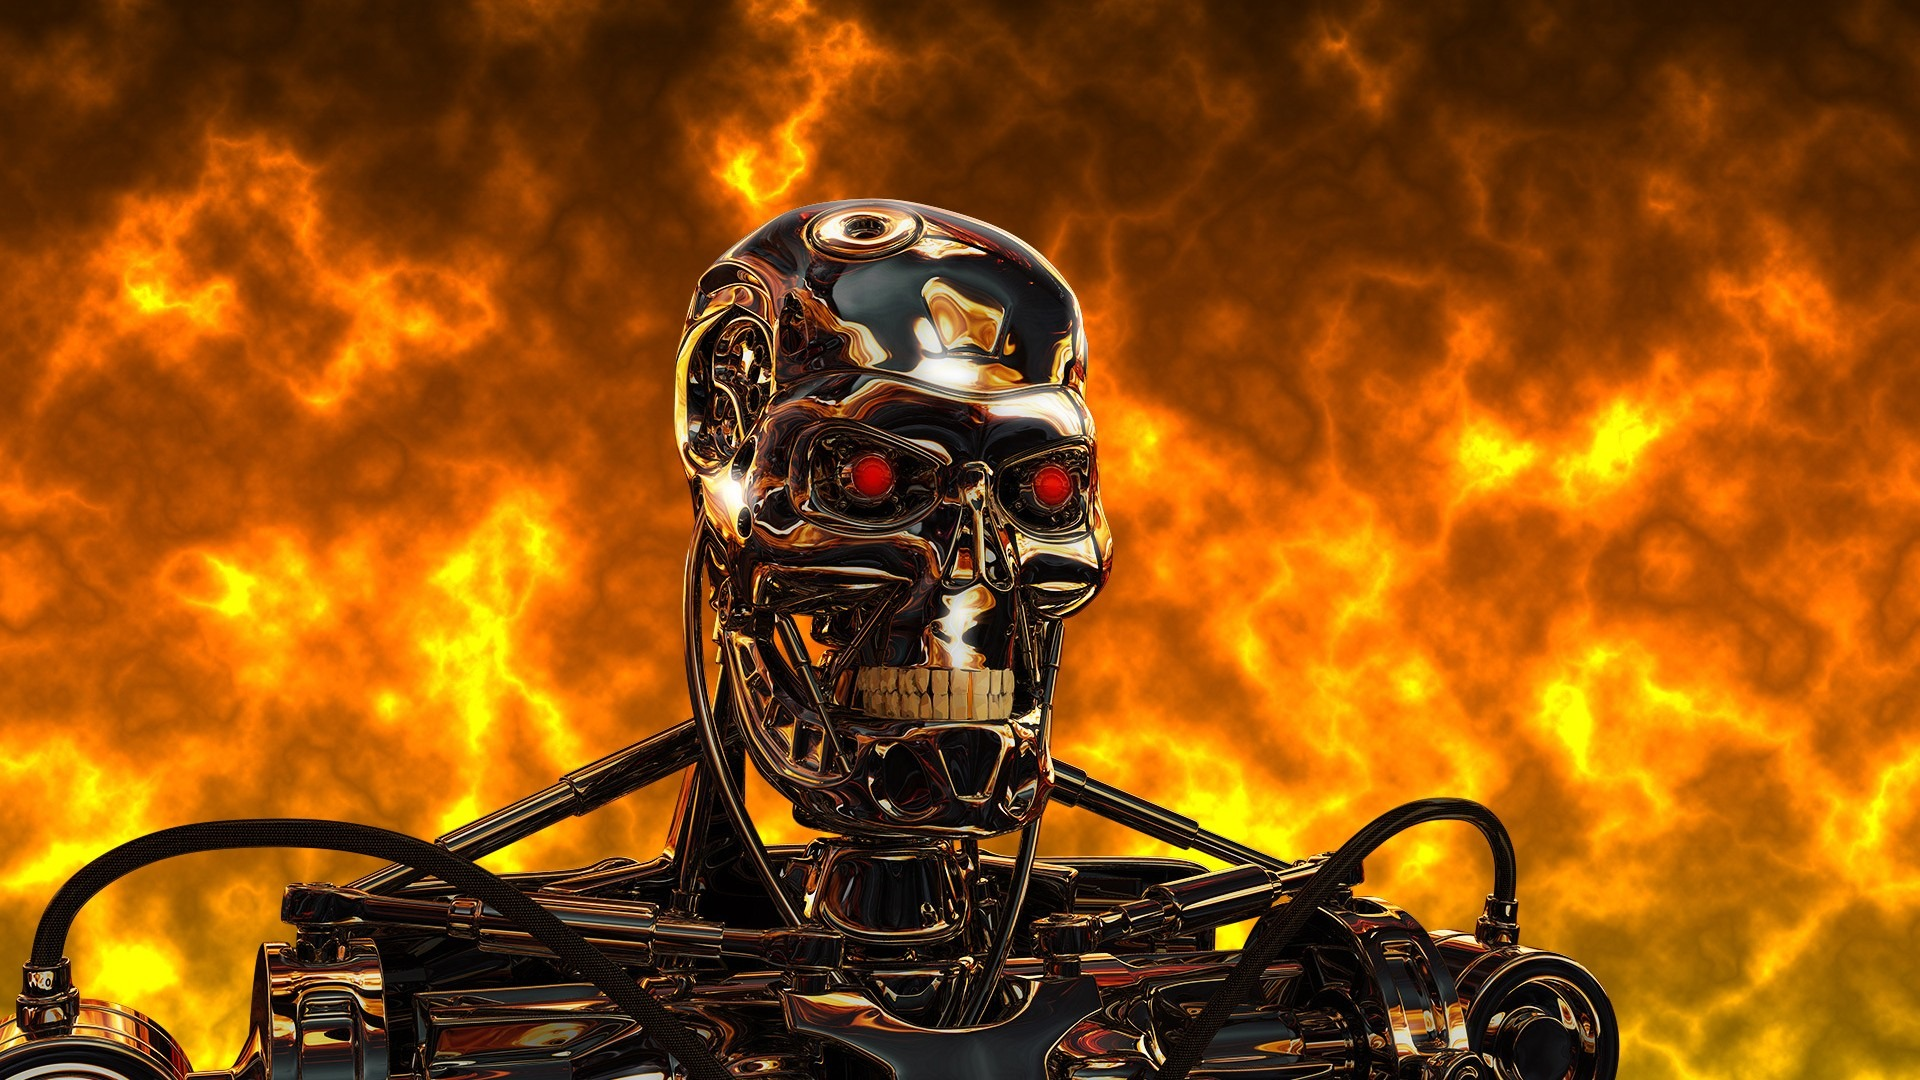 Robot Pictures Wallpaper High Definition High Quality